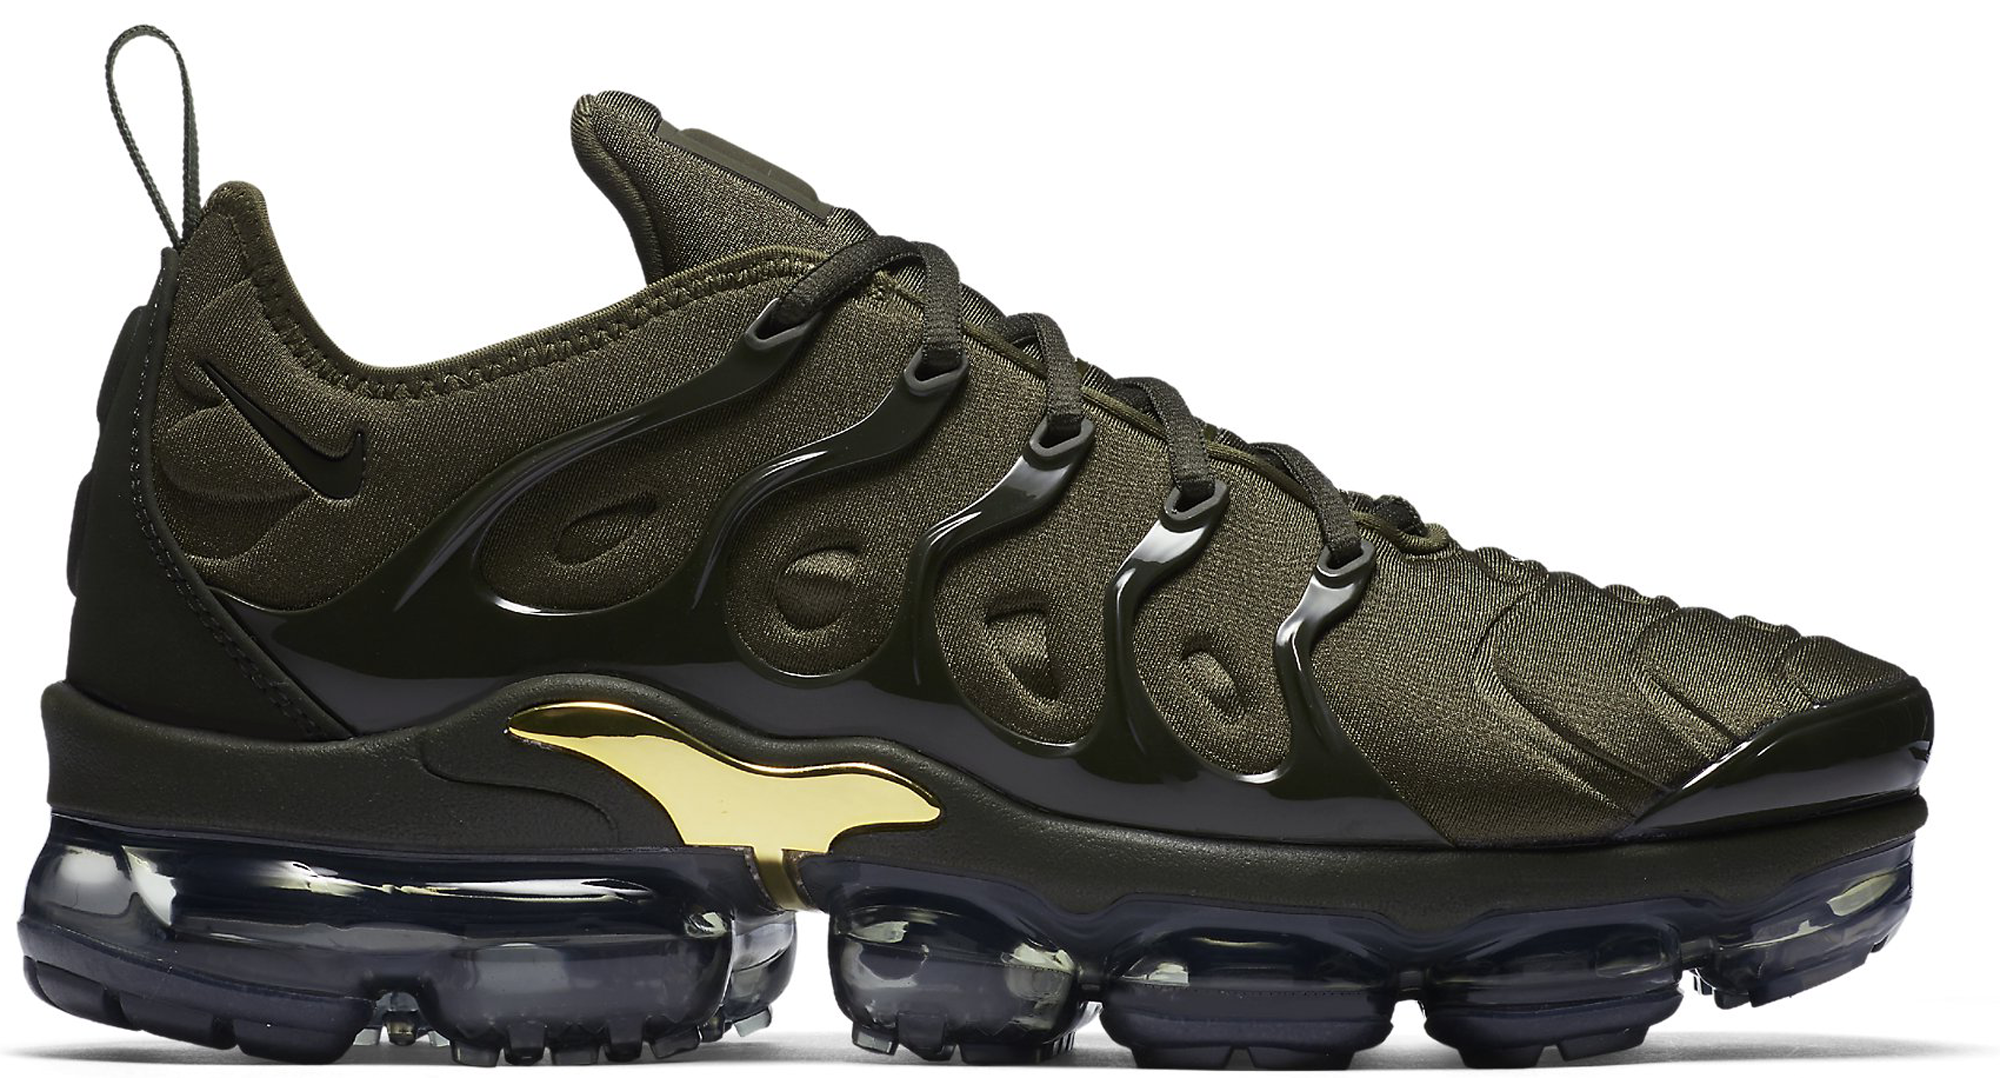 9dc4ff6ca5e Nike Air VaporMax Plus Cargo Khaki - StockX News